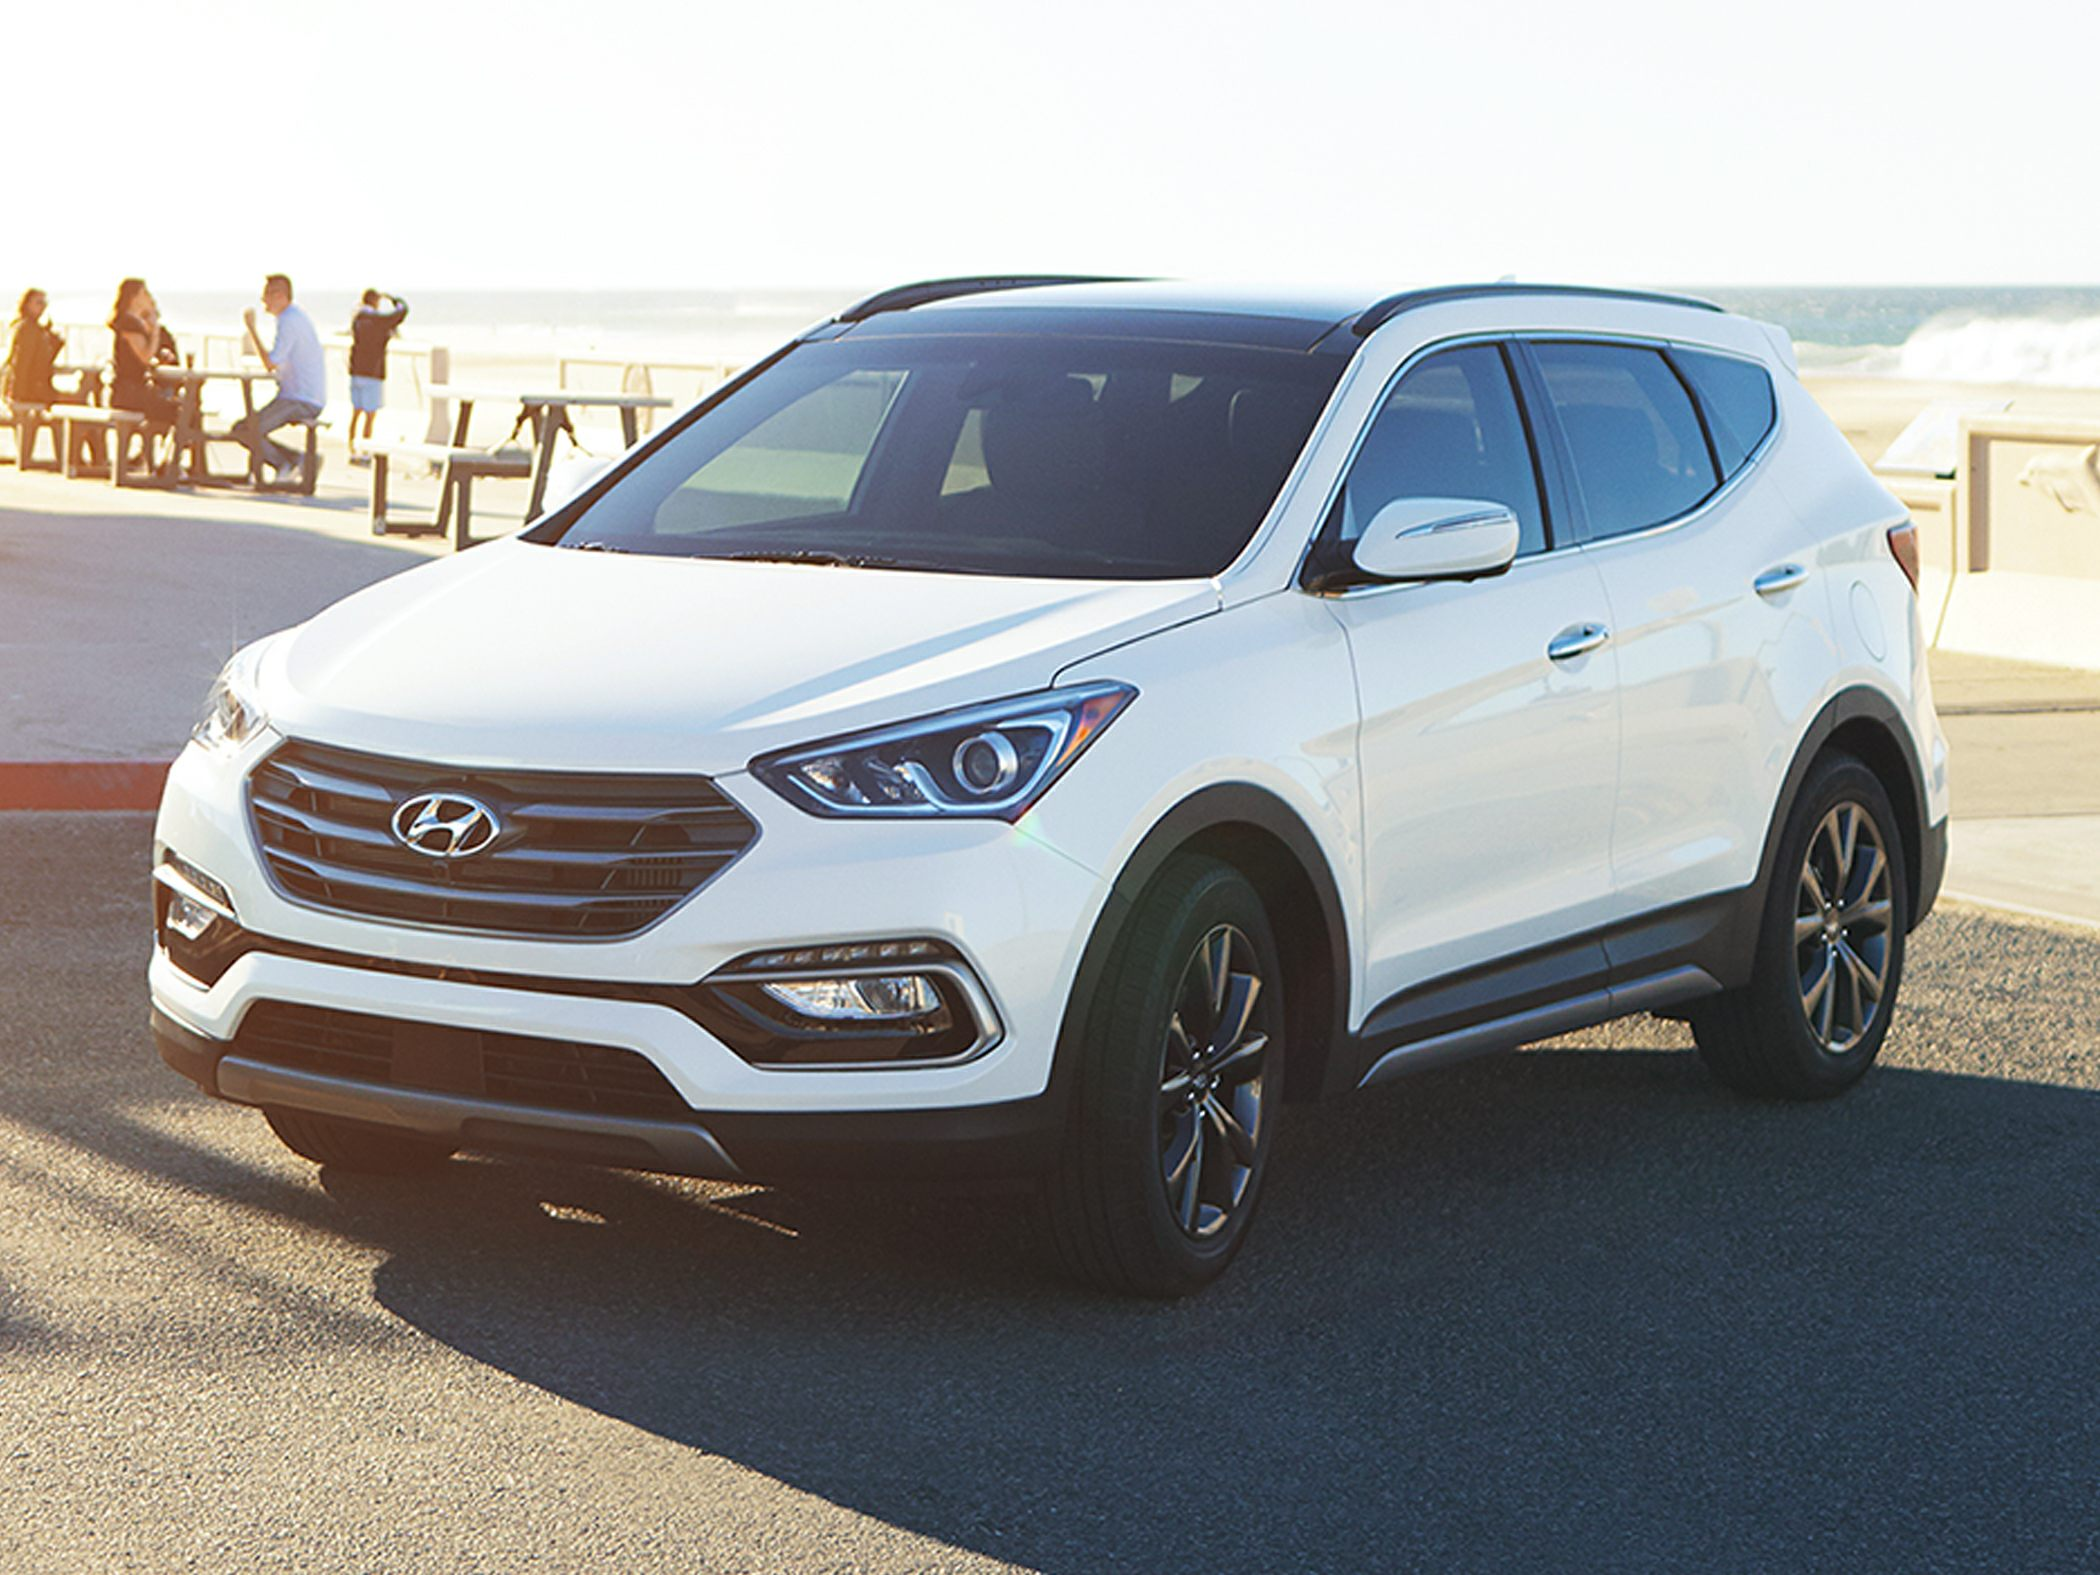 hyundai stay deals tucson hempstead lease ny island financing long models htm and